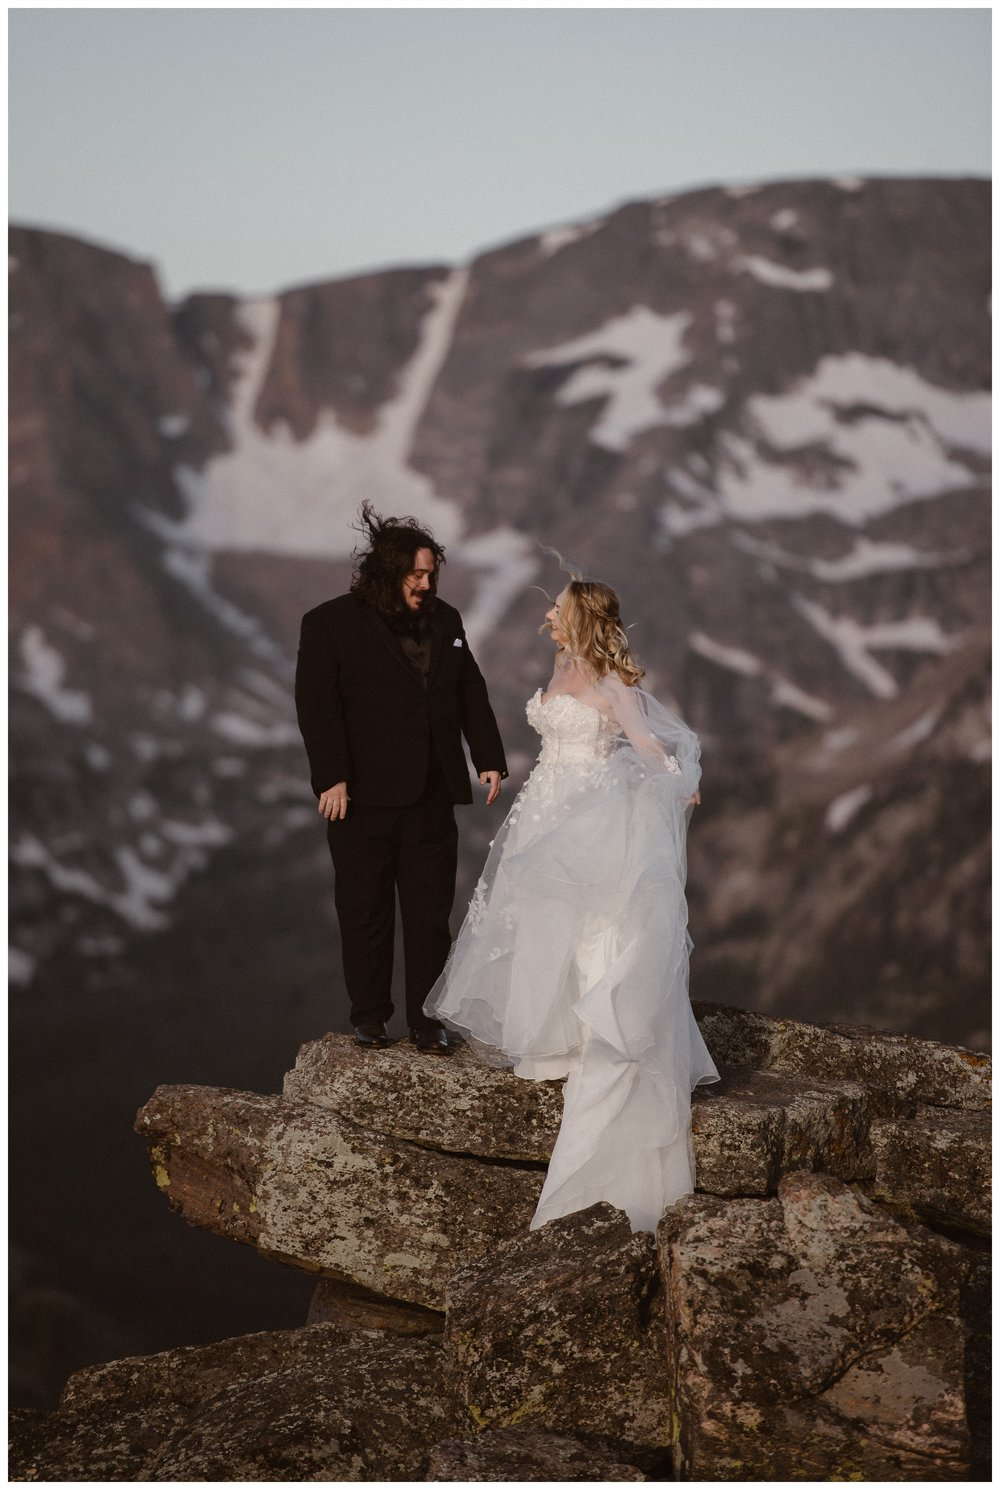 Alicia's bridal gown blows in the wind at the top of Trail Ridge Road in Rocky Mountain National Park during her first look. Photo by Adventure Instead, Maddie Mae.